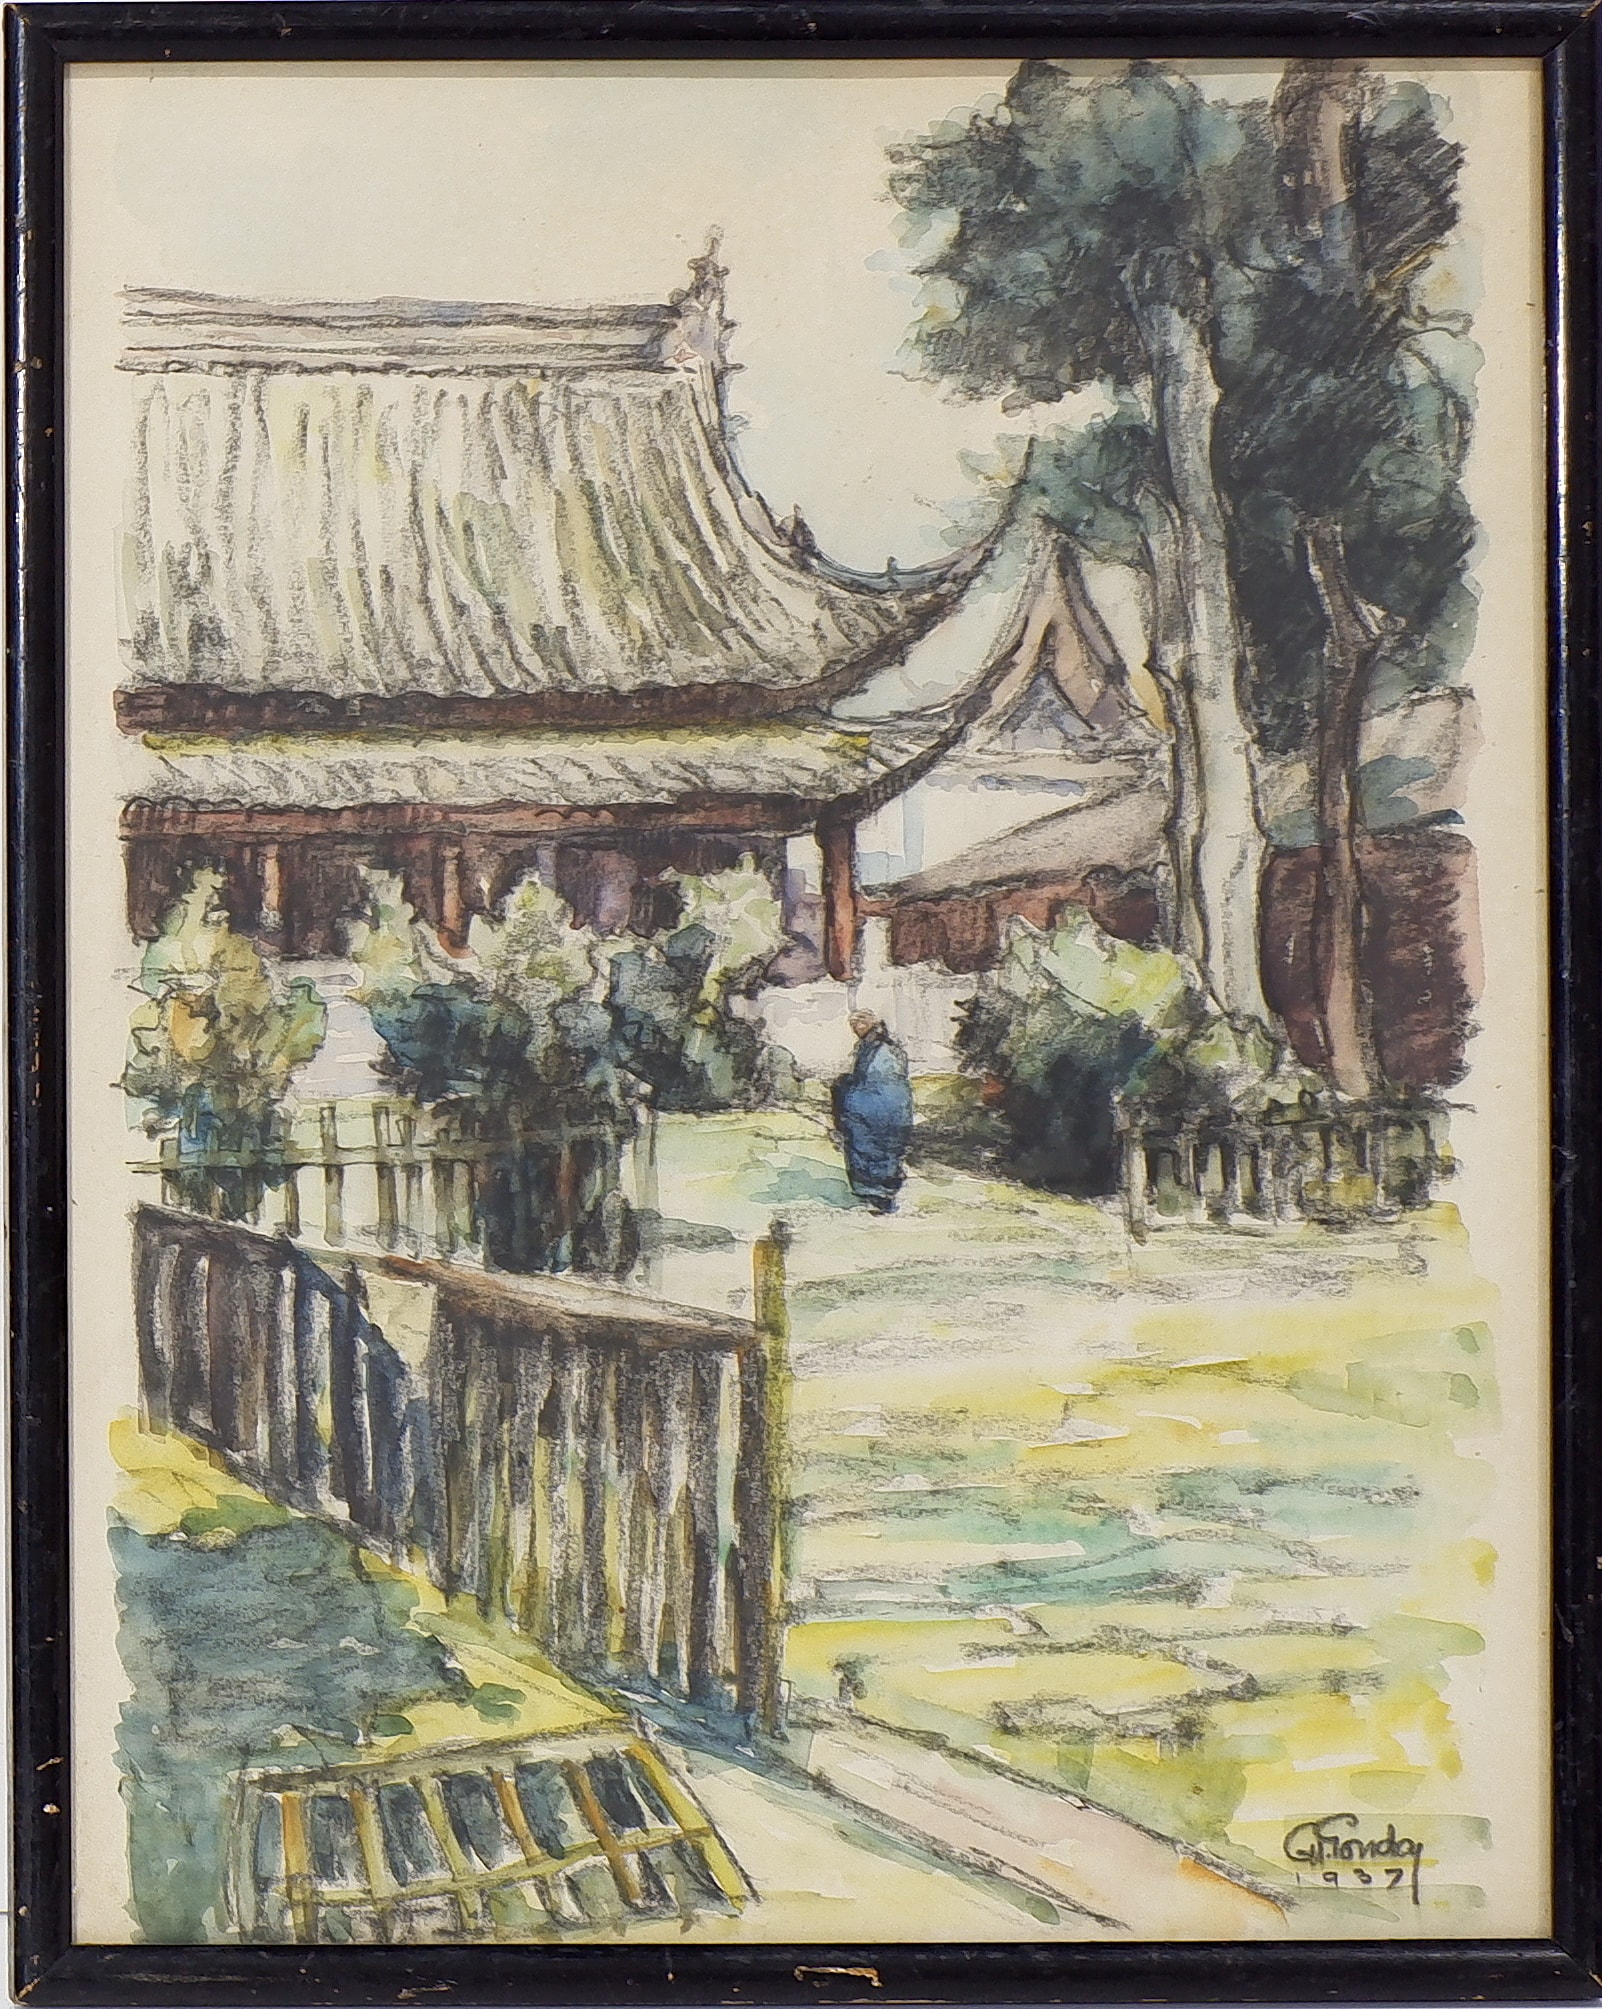 'Two Early Watercolours of China Signed GH Gonday and Dated 1937 and 1940'